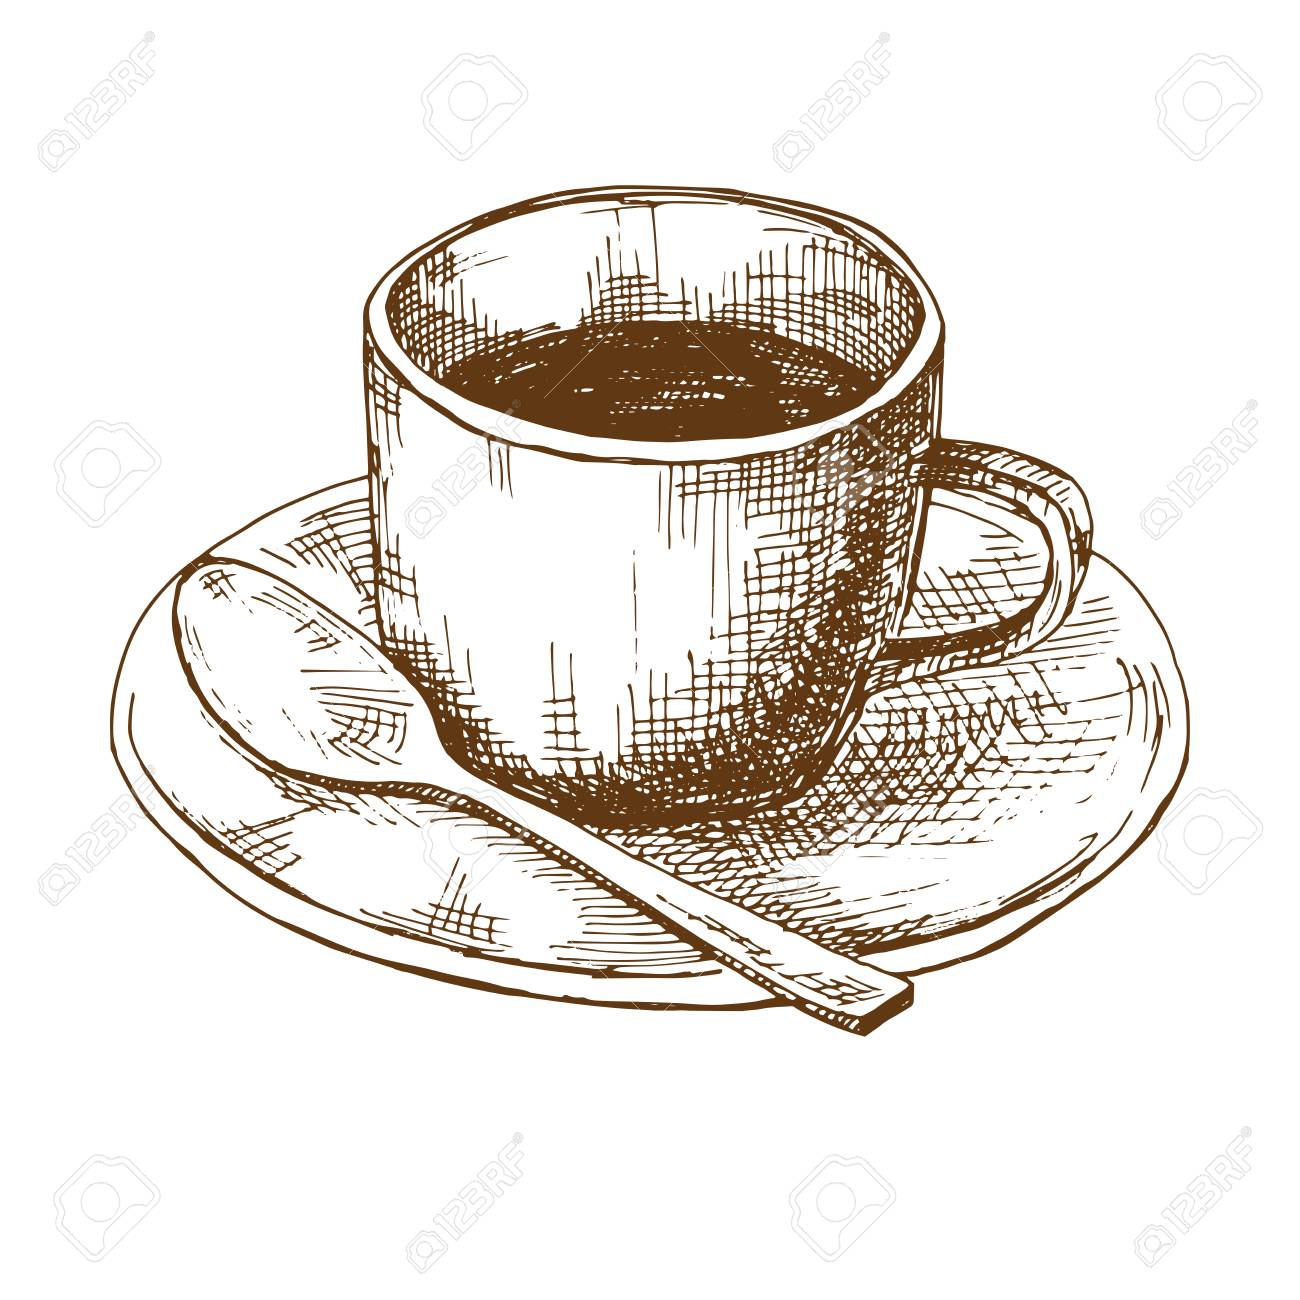 Sketch Of Coffee Mugs On A Saucer With A Spoon Vector Illustration Royalty Free Cliparts Vectors And Stock Illustration Image 111452699